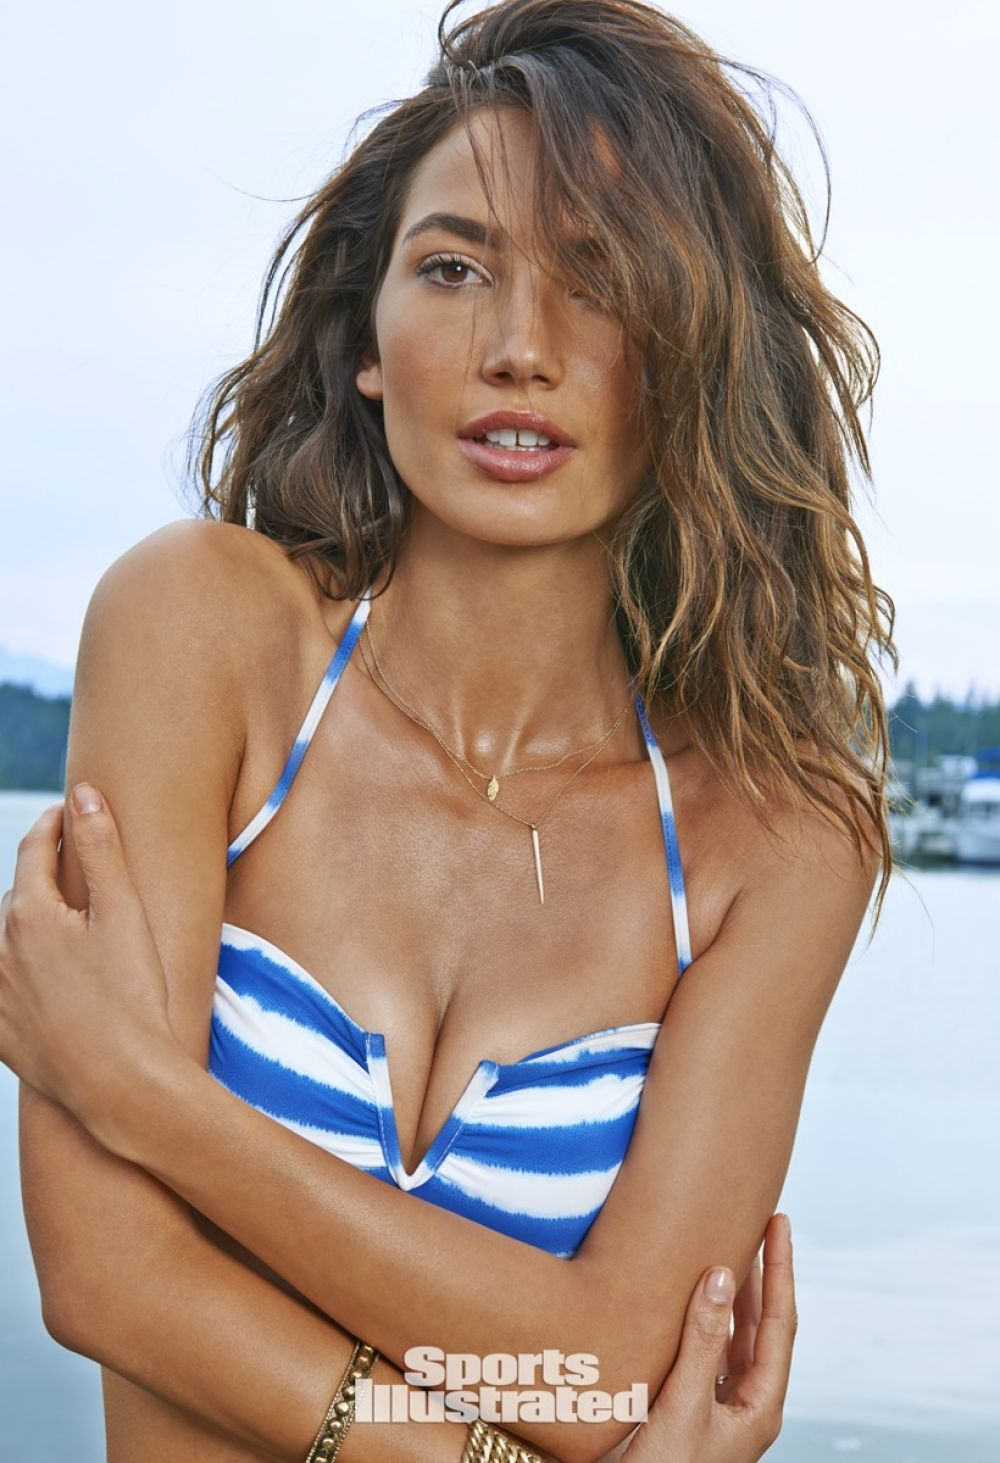 Lily Aldridge in SI Swimsuit Issue